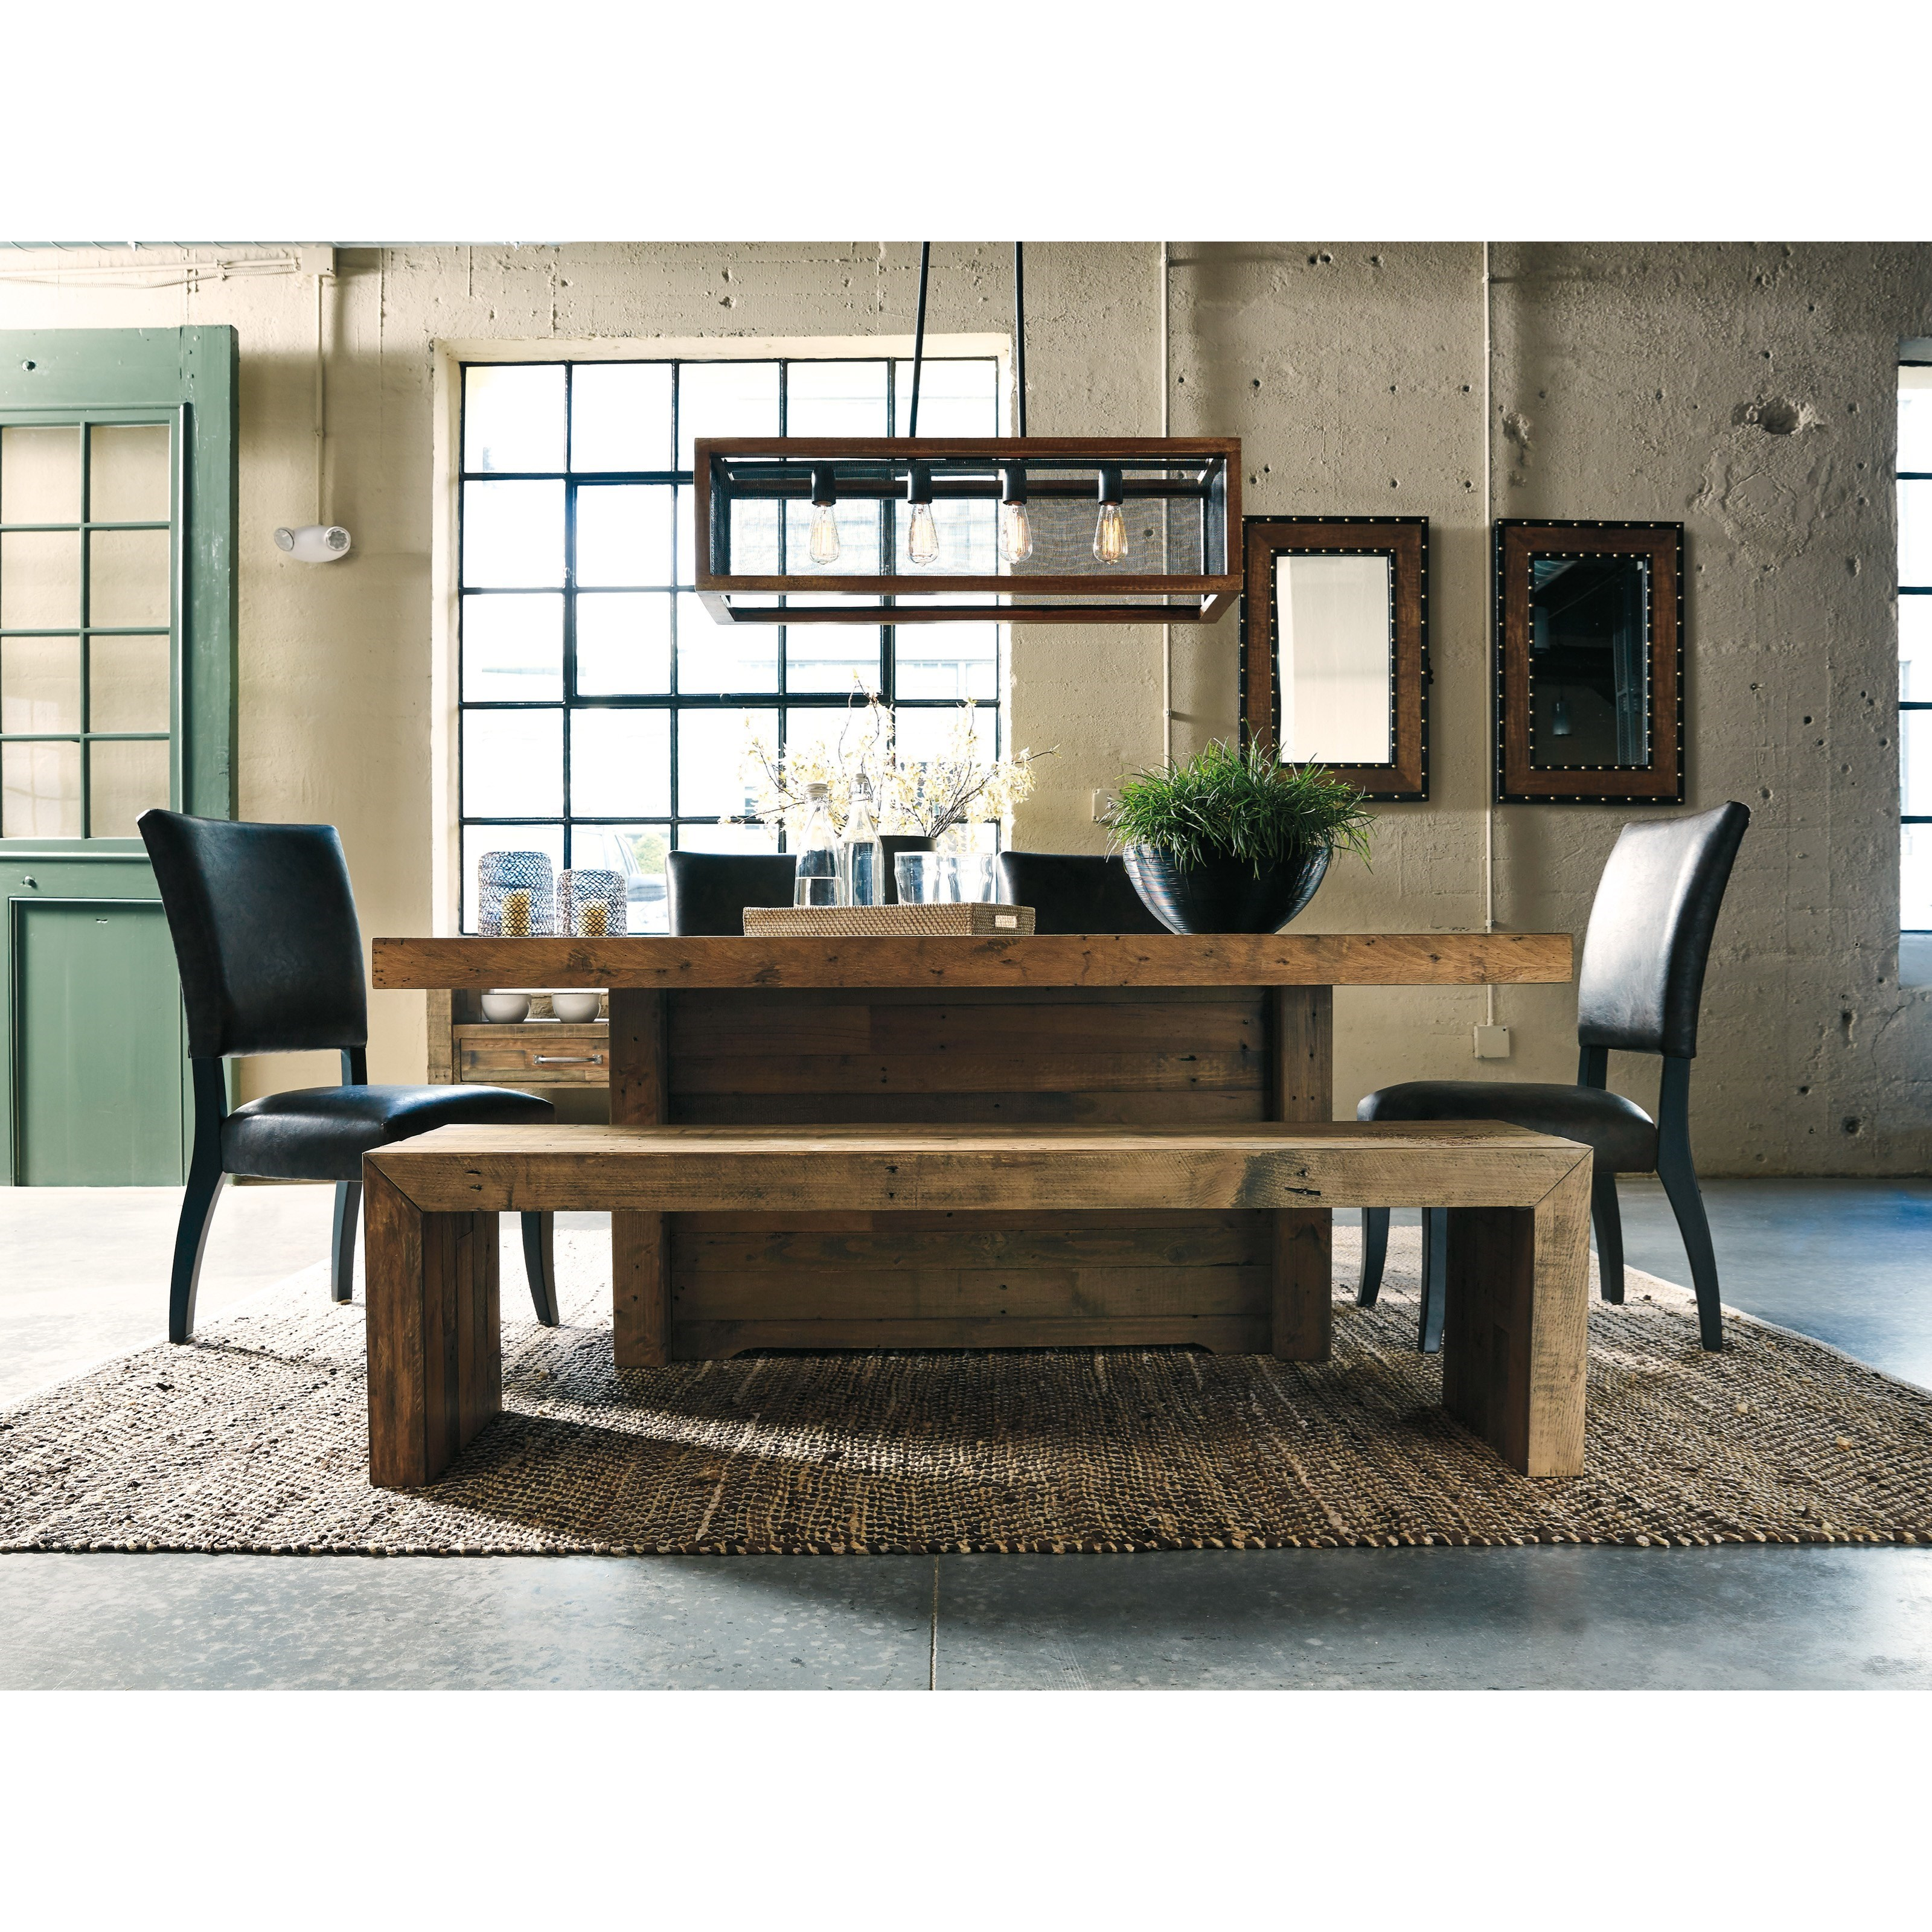 Ashley S Nest Decorating A Dining Room: Ashley Signature Design Sommerford D775-09 Large Dining